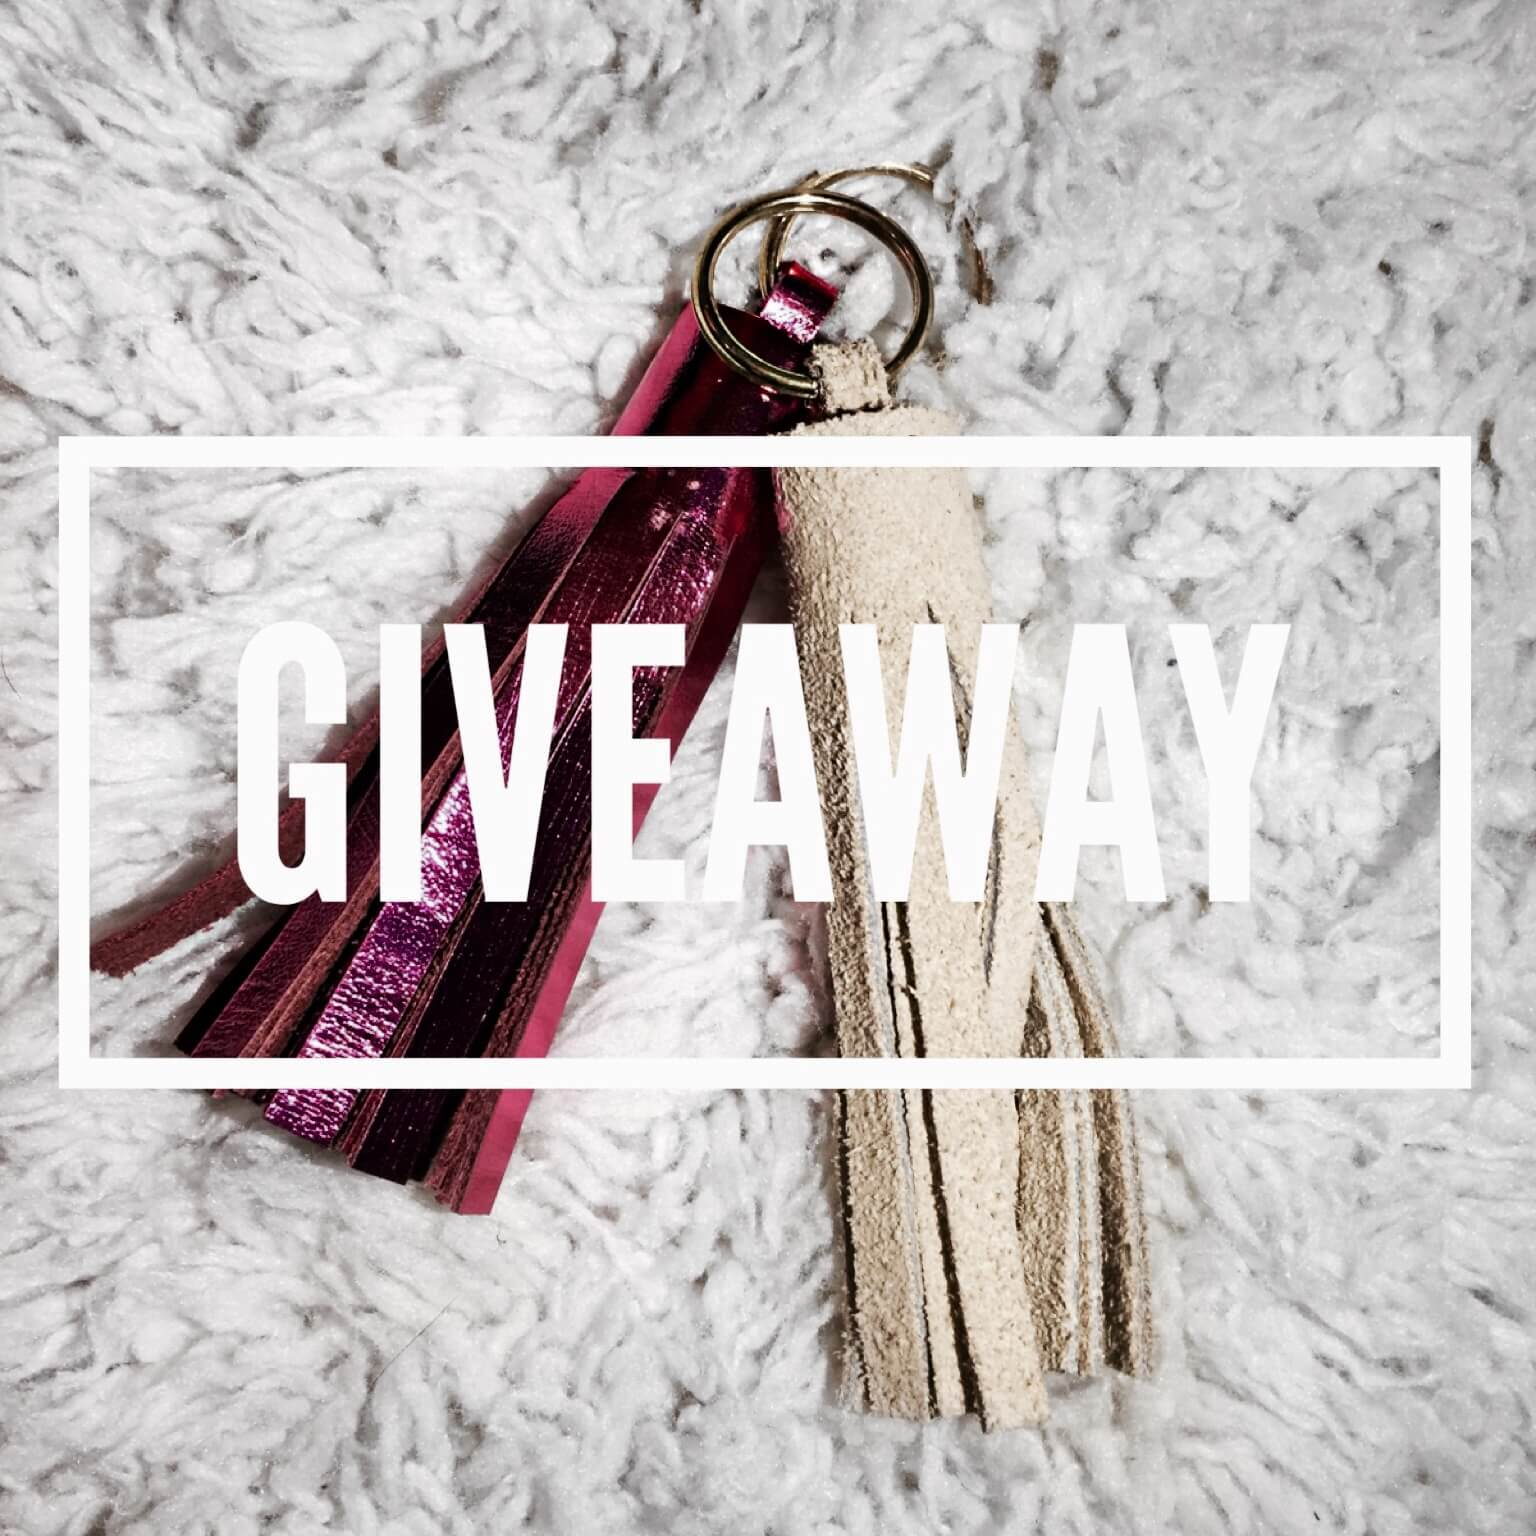 Visit theblonderlife.com to win one of these suede tassel keychains!